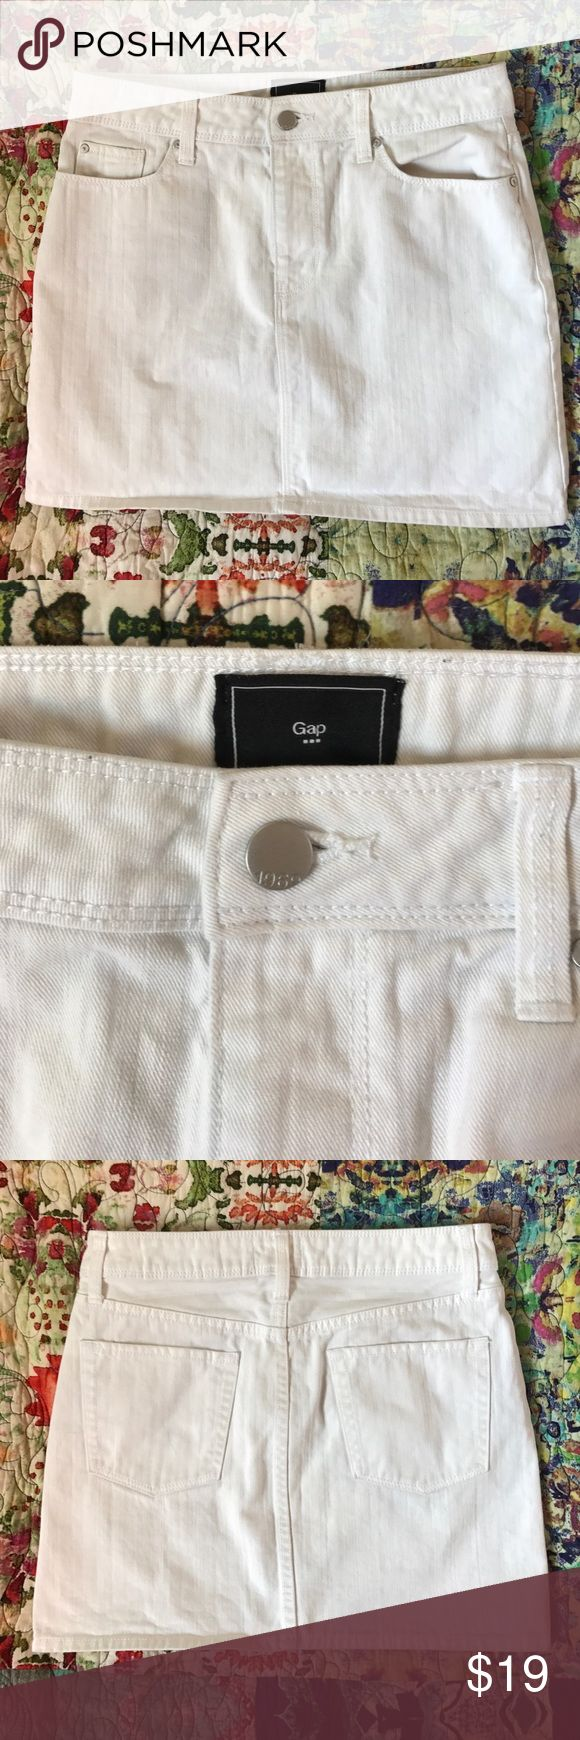 Gap White Cotton Denim Mini Skirt Gap Outlet white 100% cotton denim straight mini skirt. Some minor little marks that can be bleached out easily. Great condition other than that. GAP Skirts Mini